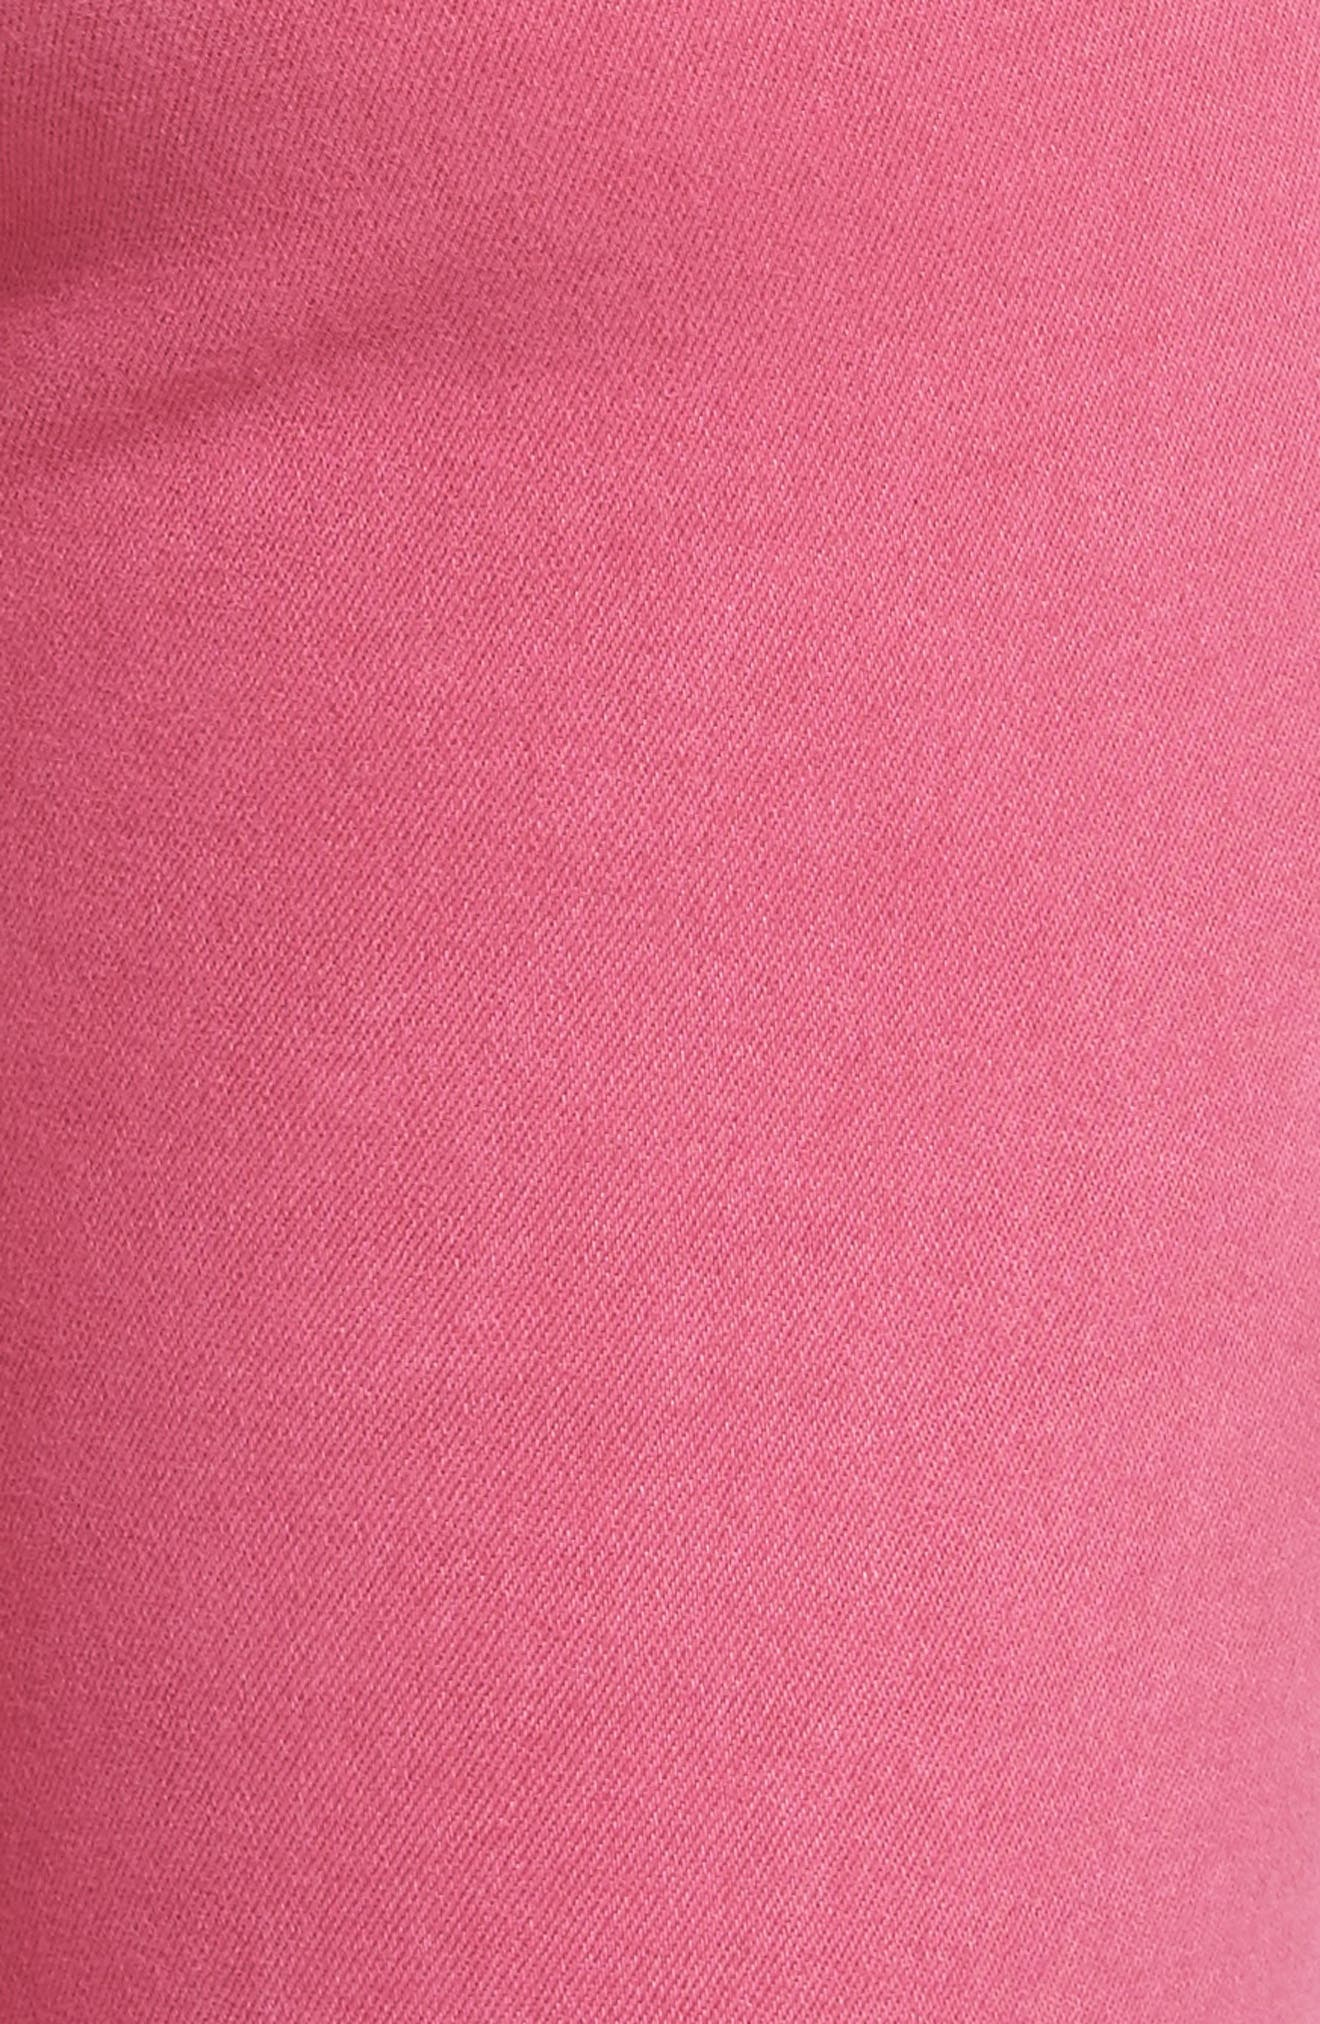 Alternate Image 5  - KUT from the Kloth Connie Frayed Hem Crop Skinny Jeans (Hot Pink)